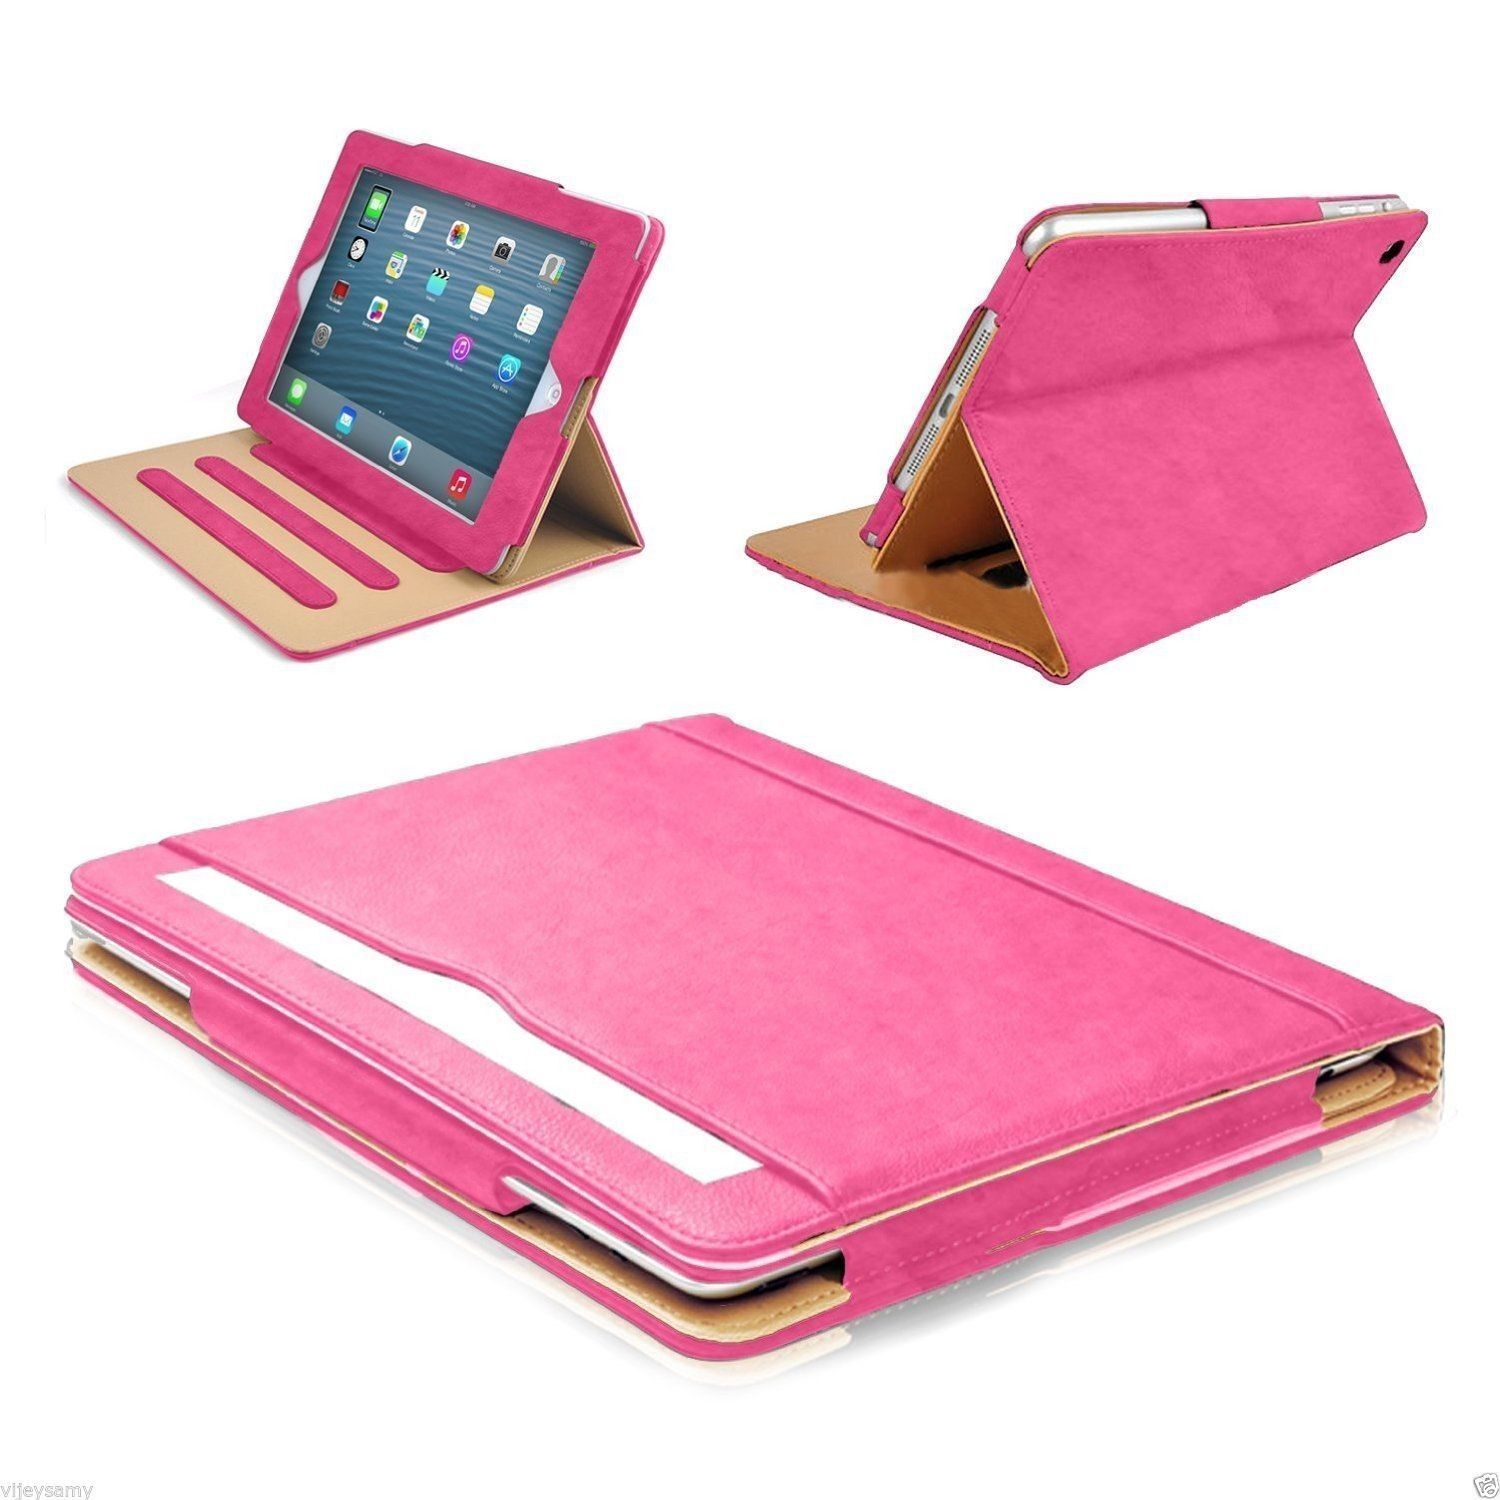 New Soft Leather Smart Case Cover Sleep Wake Stand for APPLE iPad 9.7 6th 5th